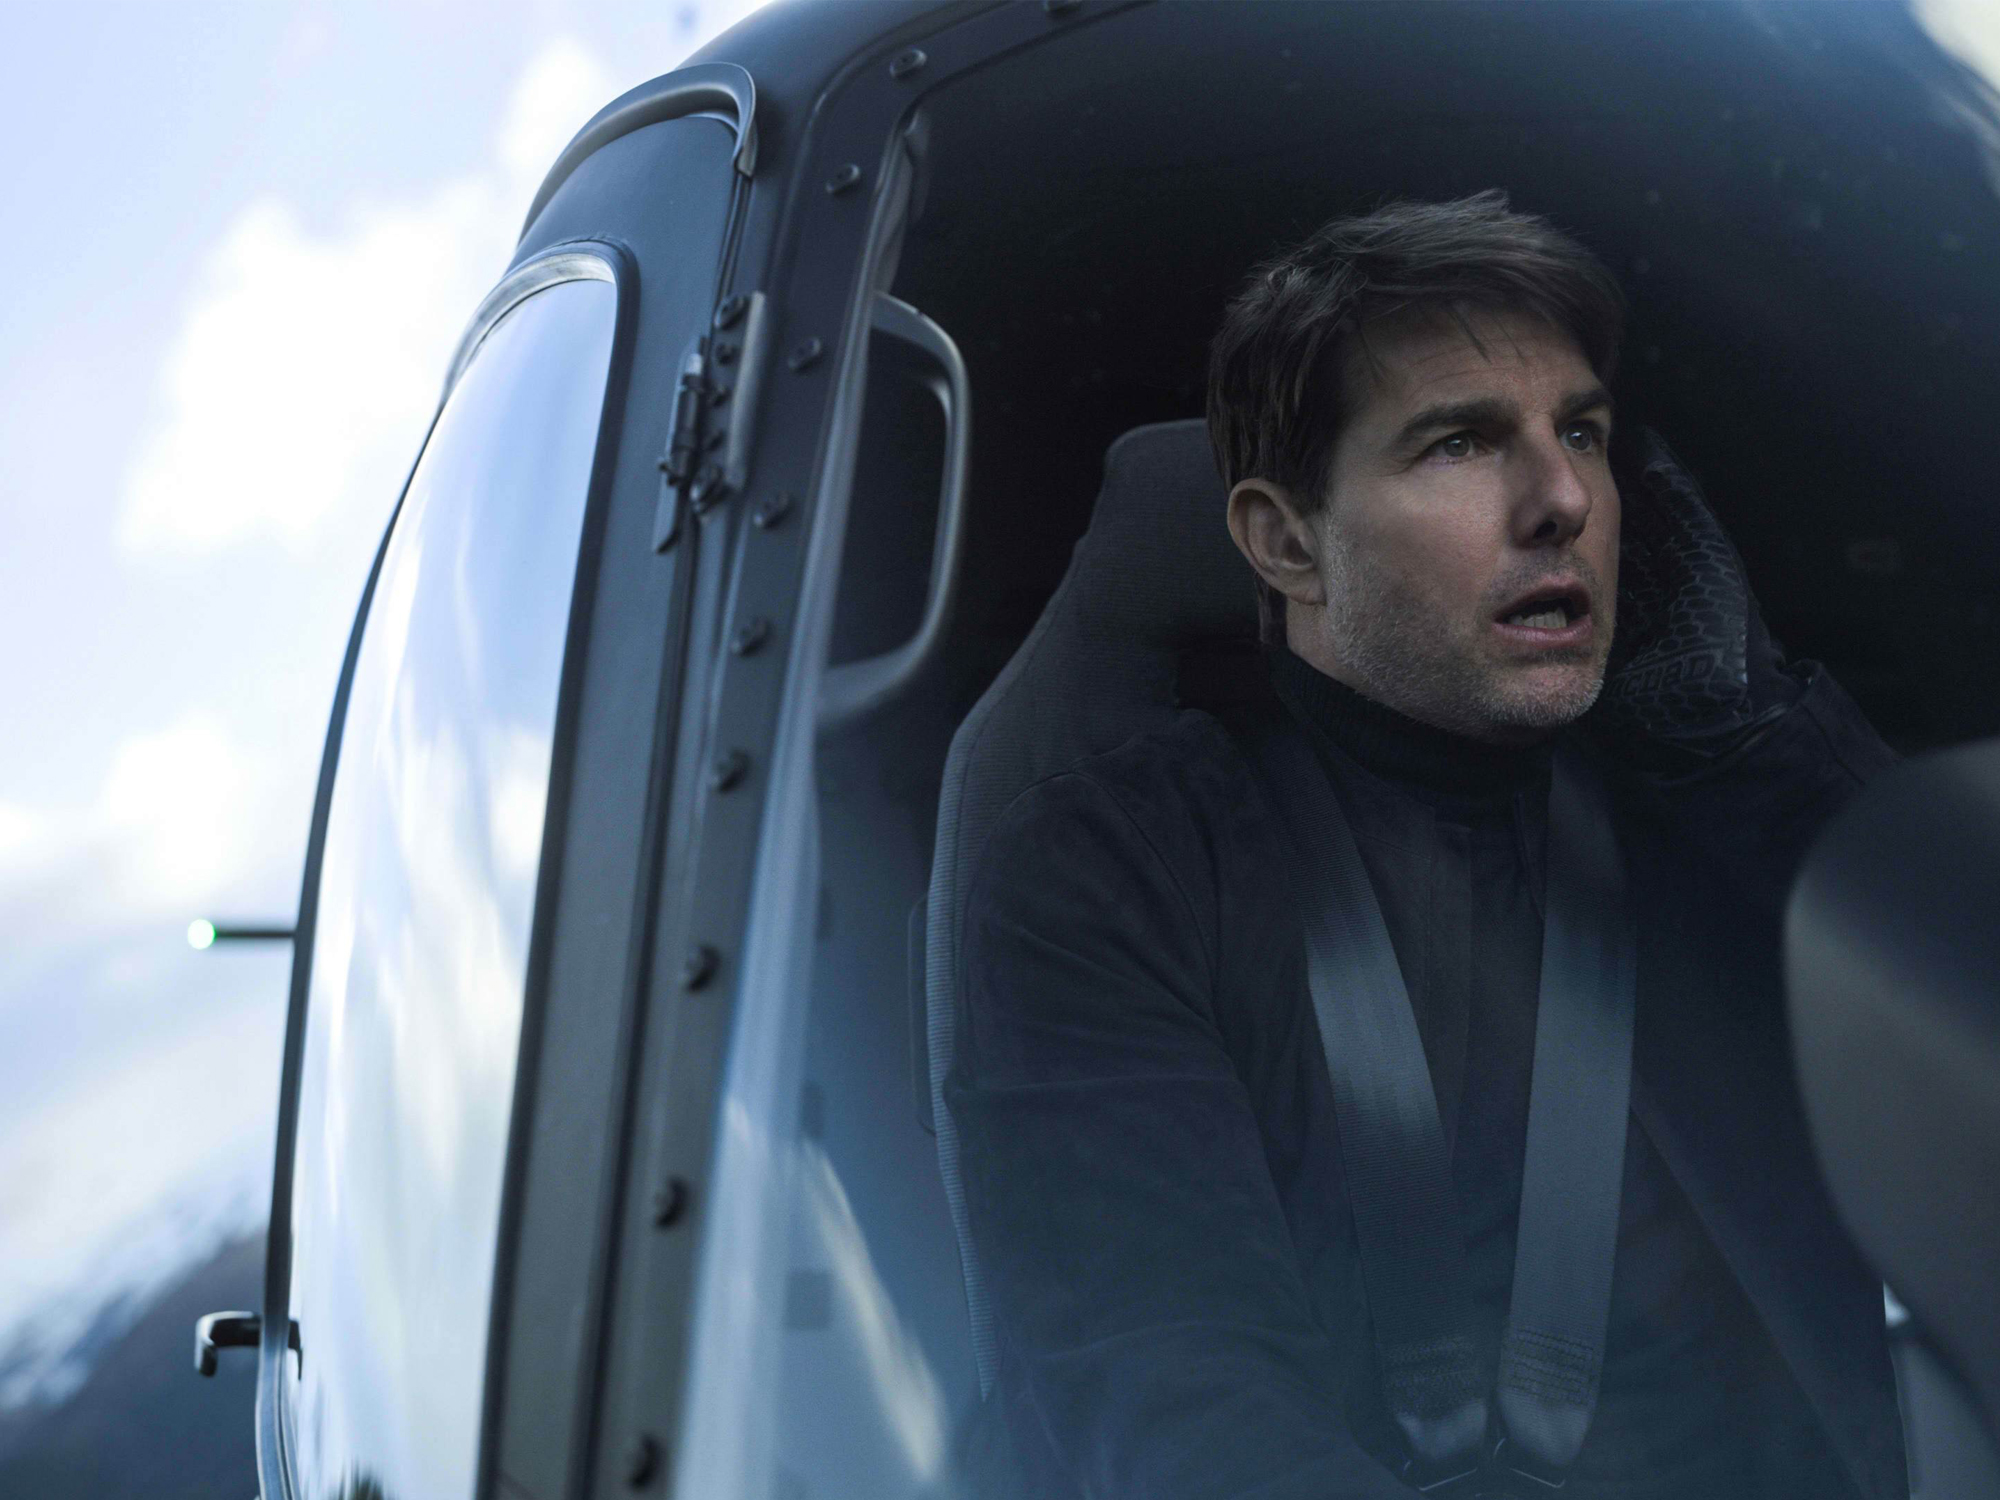 Mission-Impossible-Fallout-Film-Review.jpg